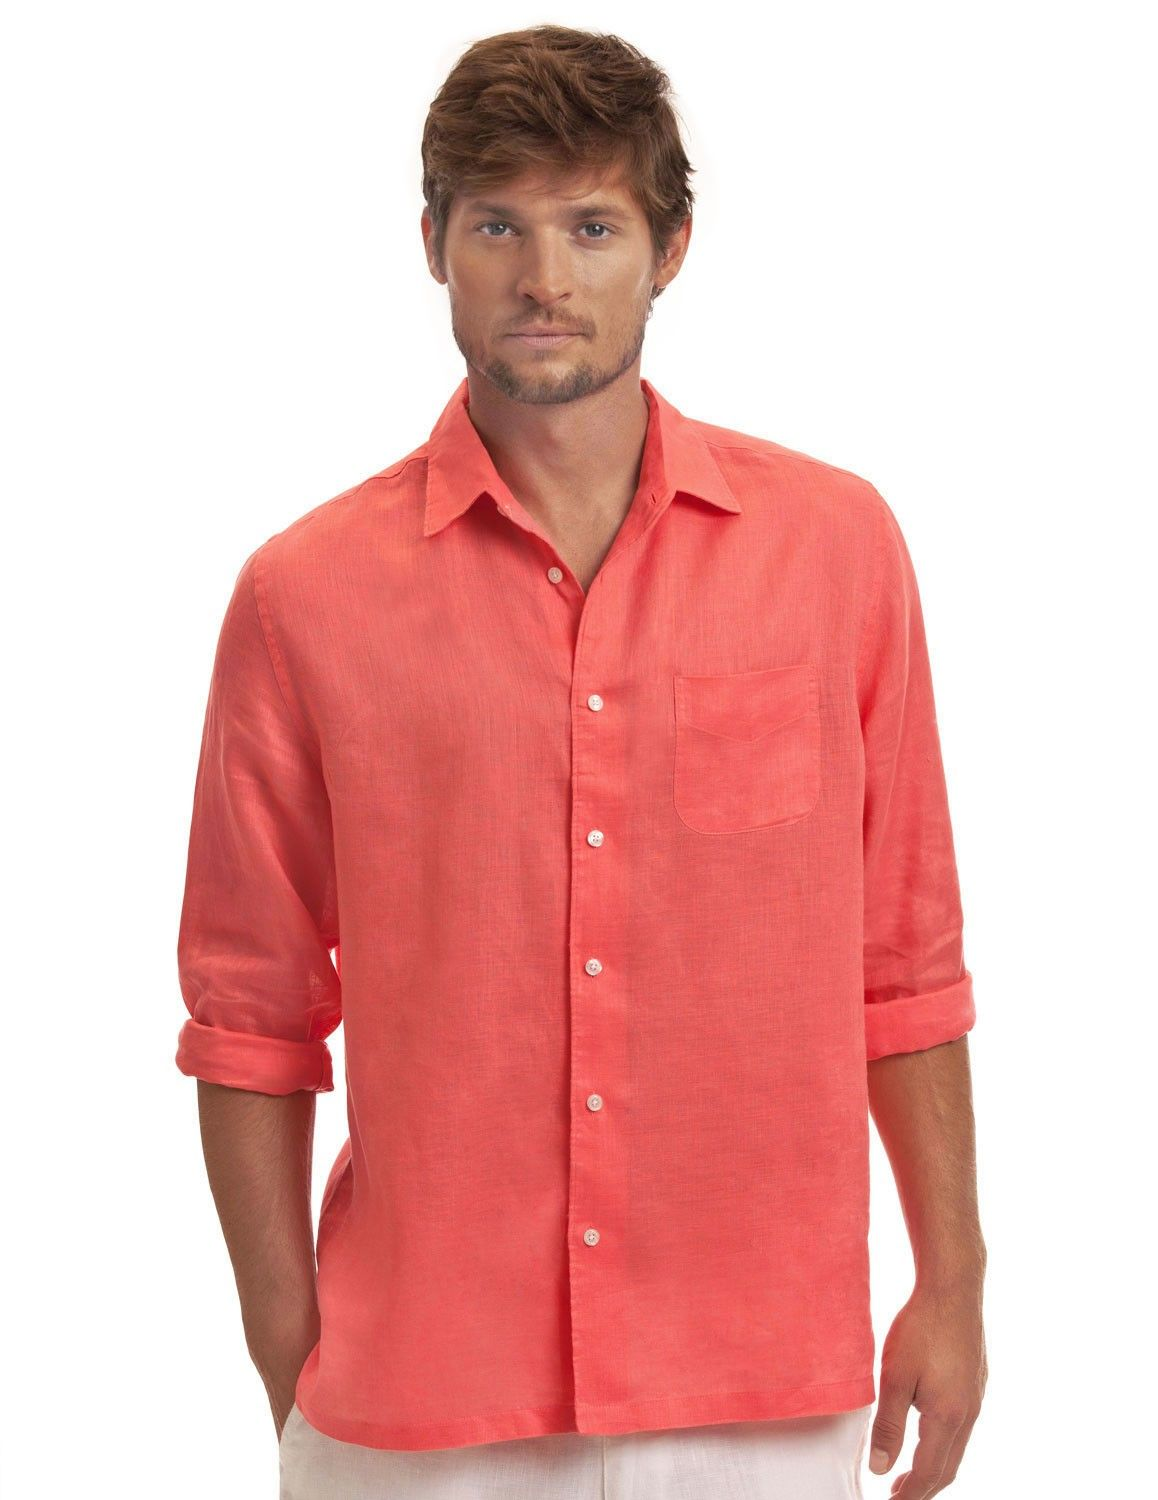 Coral classic linen shirt men 39 s coral linen shirt for Coral shirts for guys